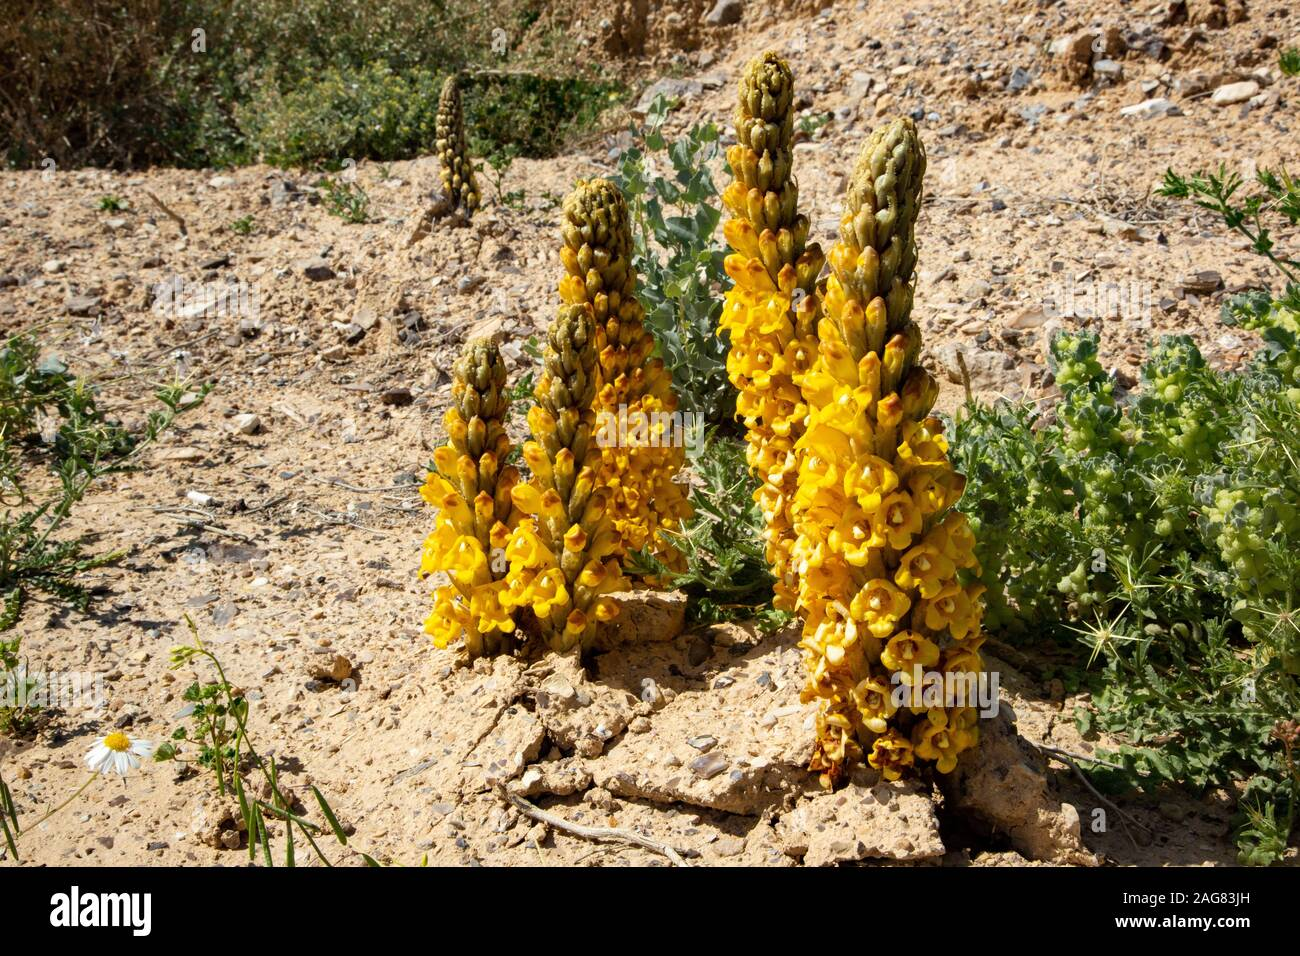 Yellow or desert broomrape, Cistanche tubulosa.  This plant is a parasitic member of the broomrape family. Photographed in the Negev Desert, Israel Stock Photo